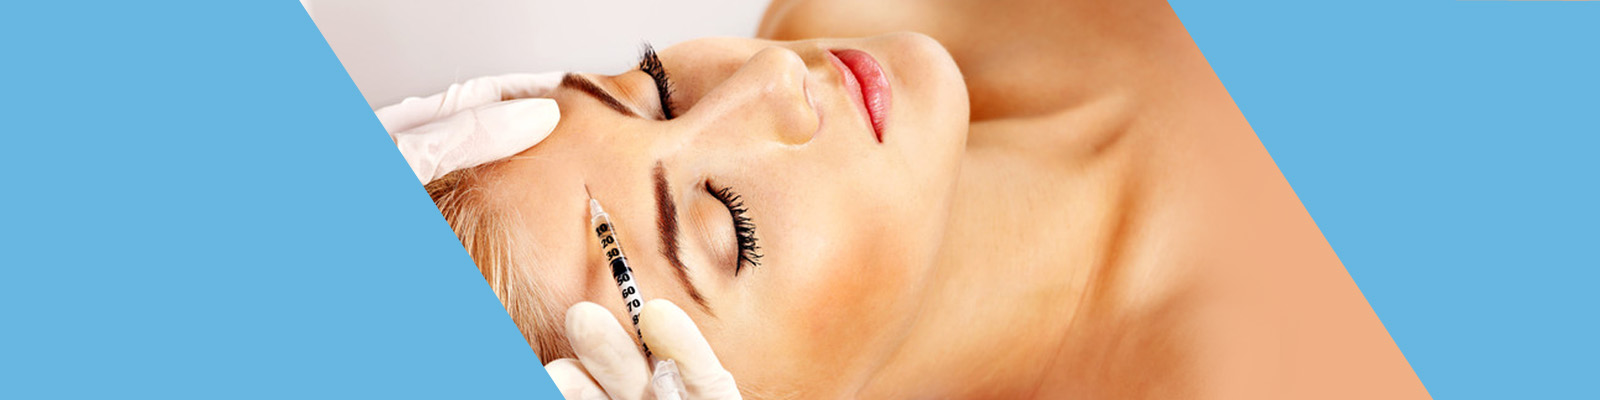 Cosmetic Fillers & Injections at First Coast Plastic Surgery